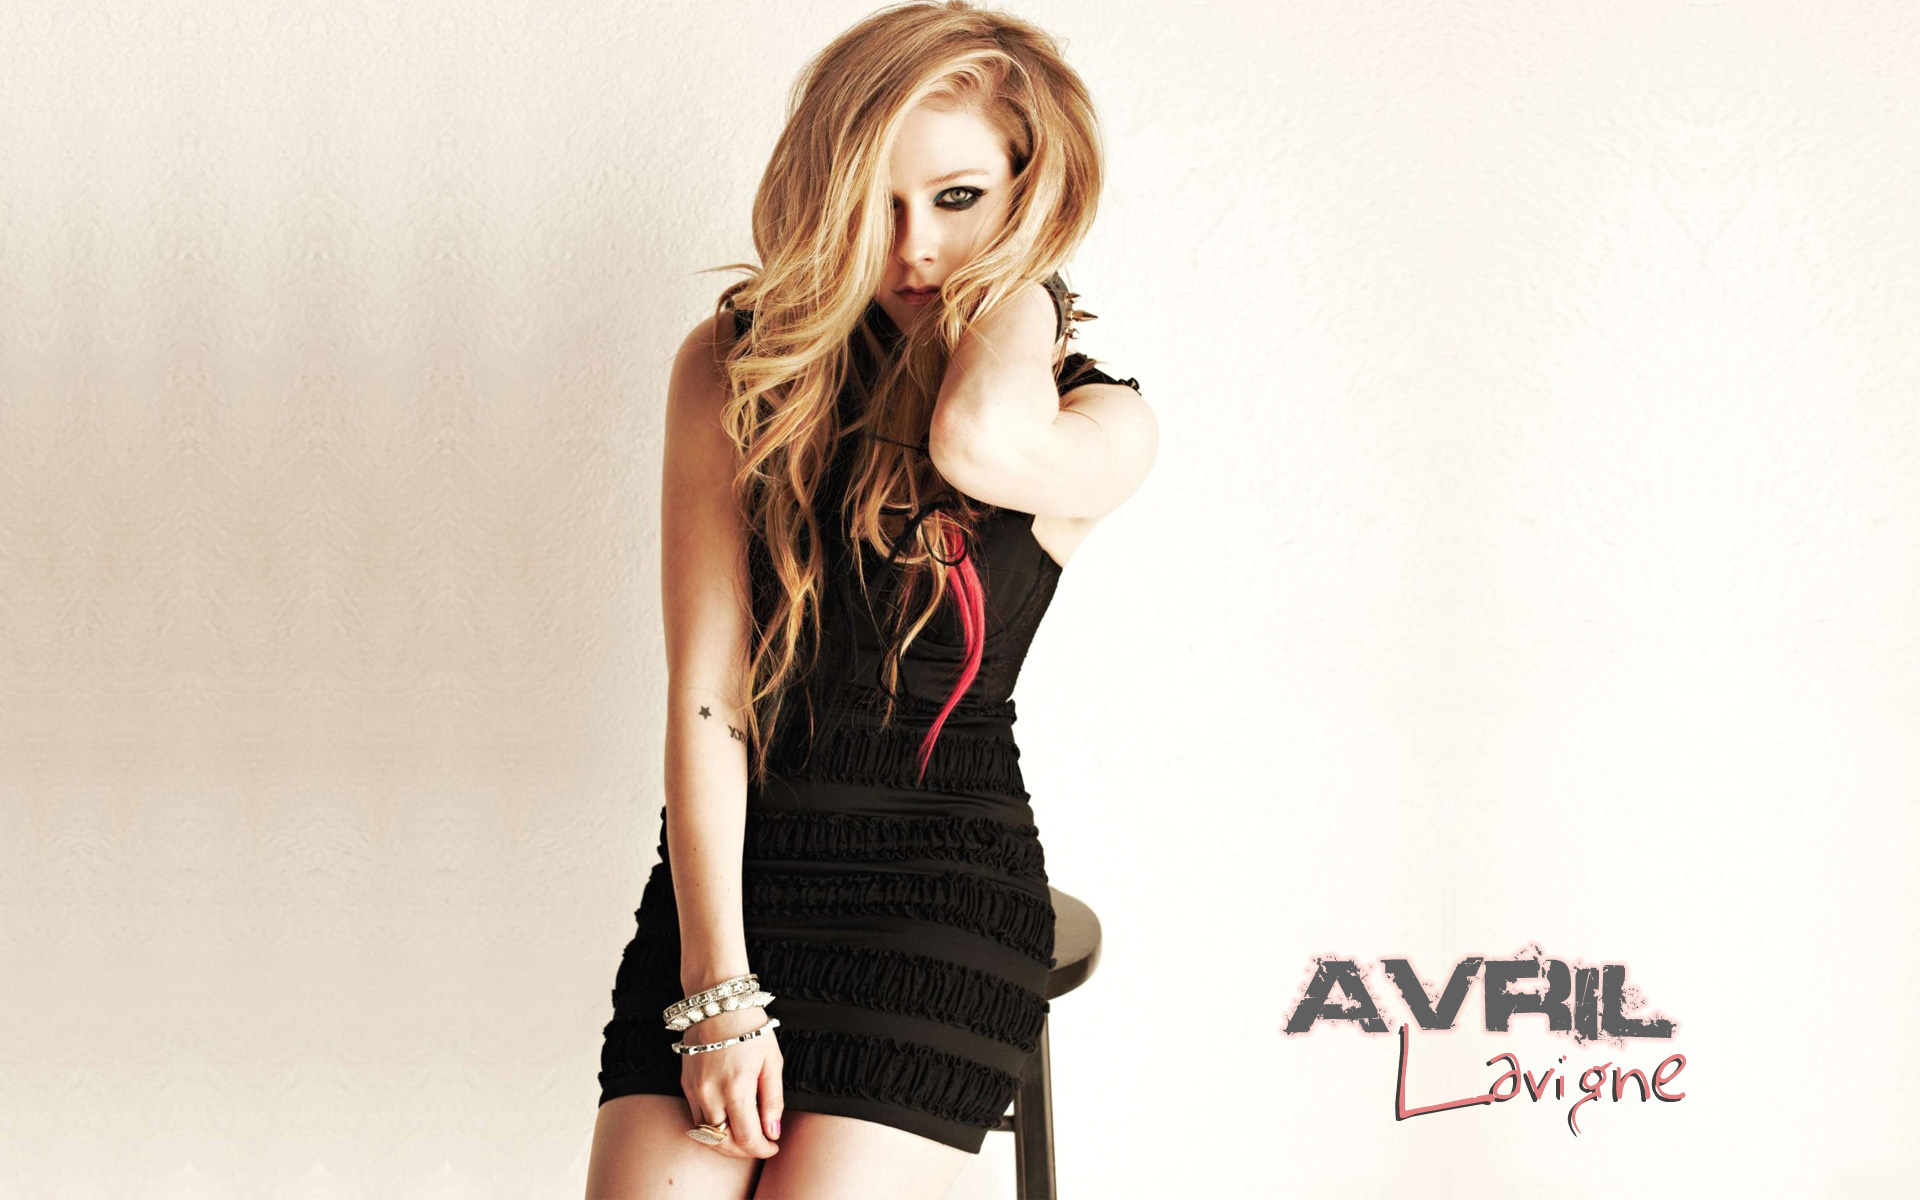 avril lavigne wallpapers a4 - hd desktop wallpapers | 4k hd